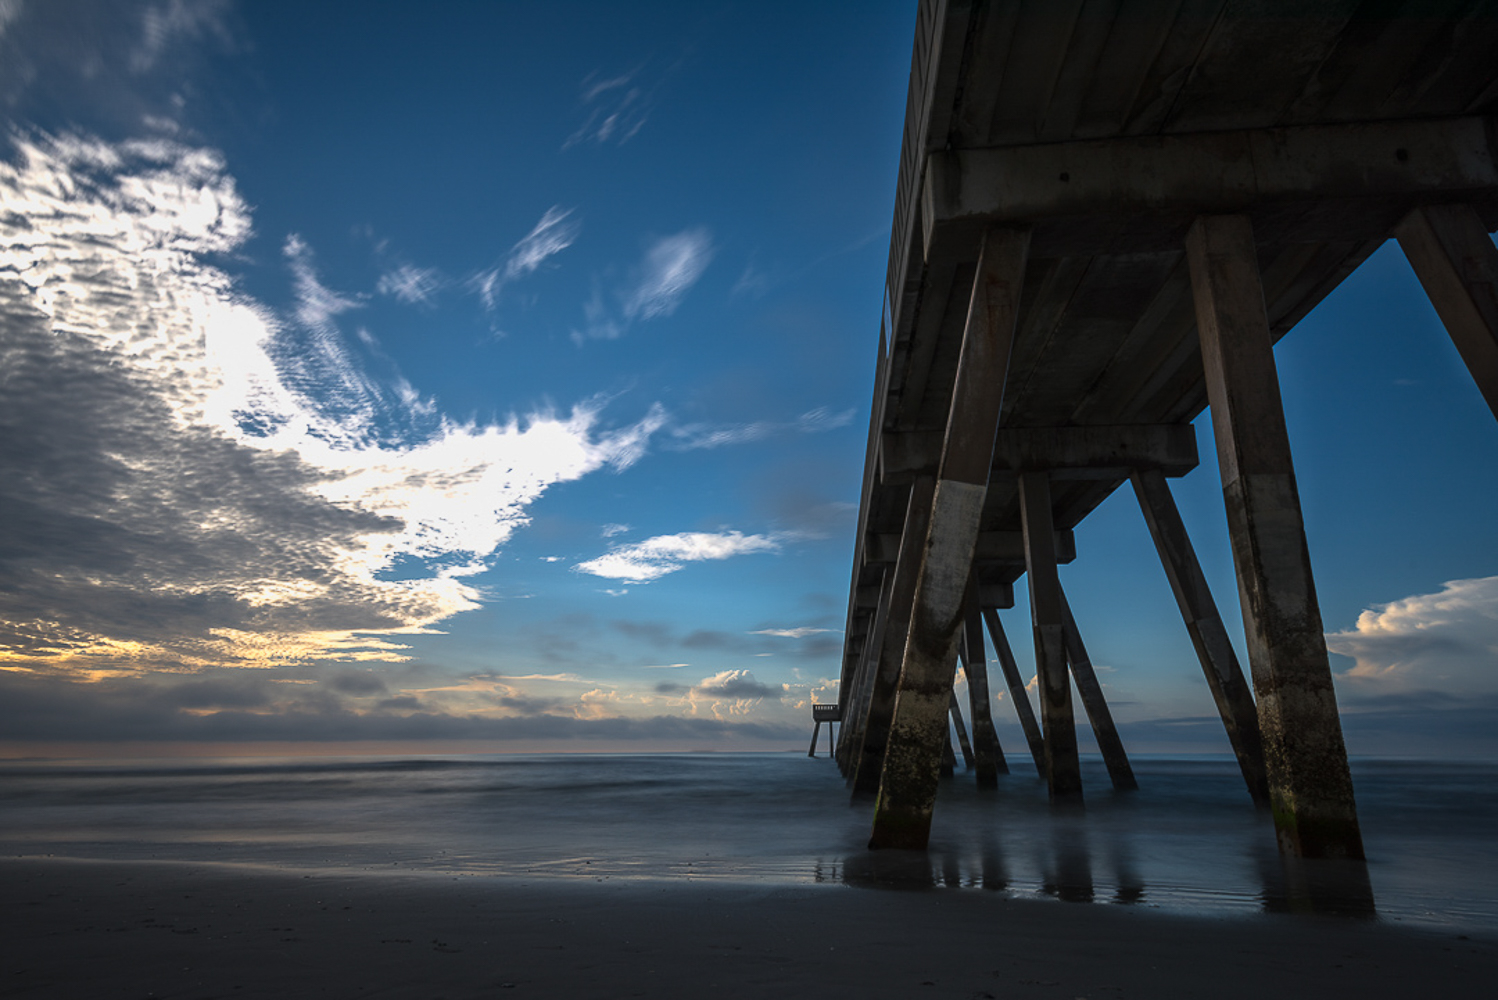 Landscape photographs from sunrises and sunsets in North Carolin